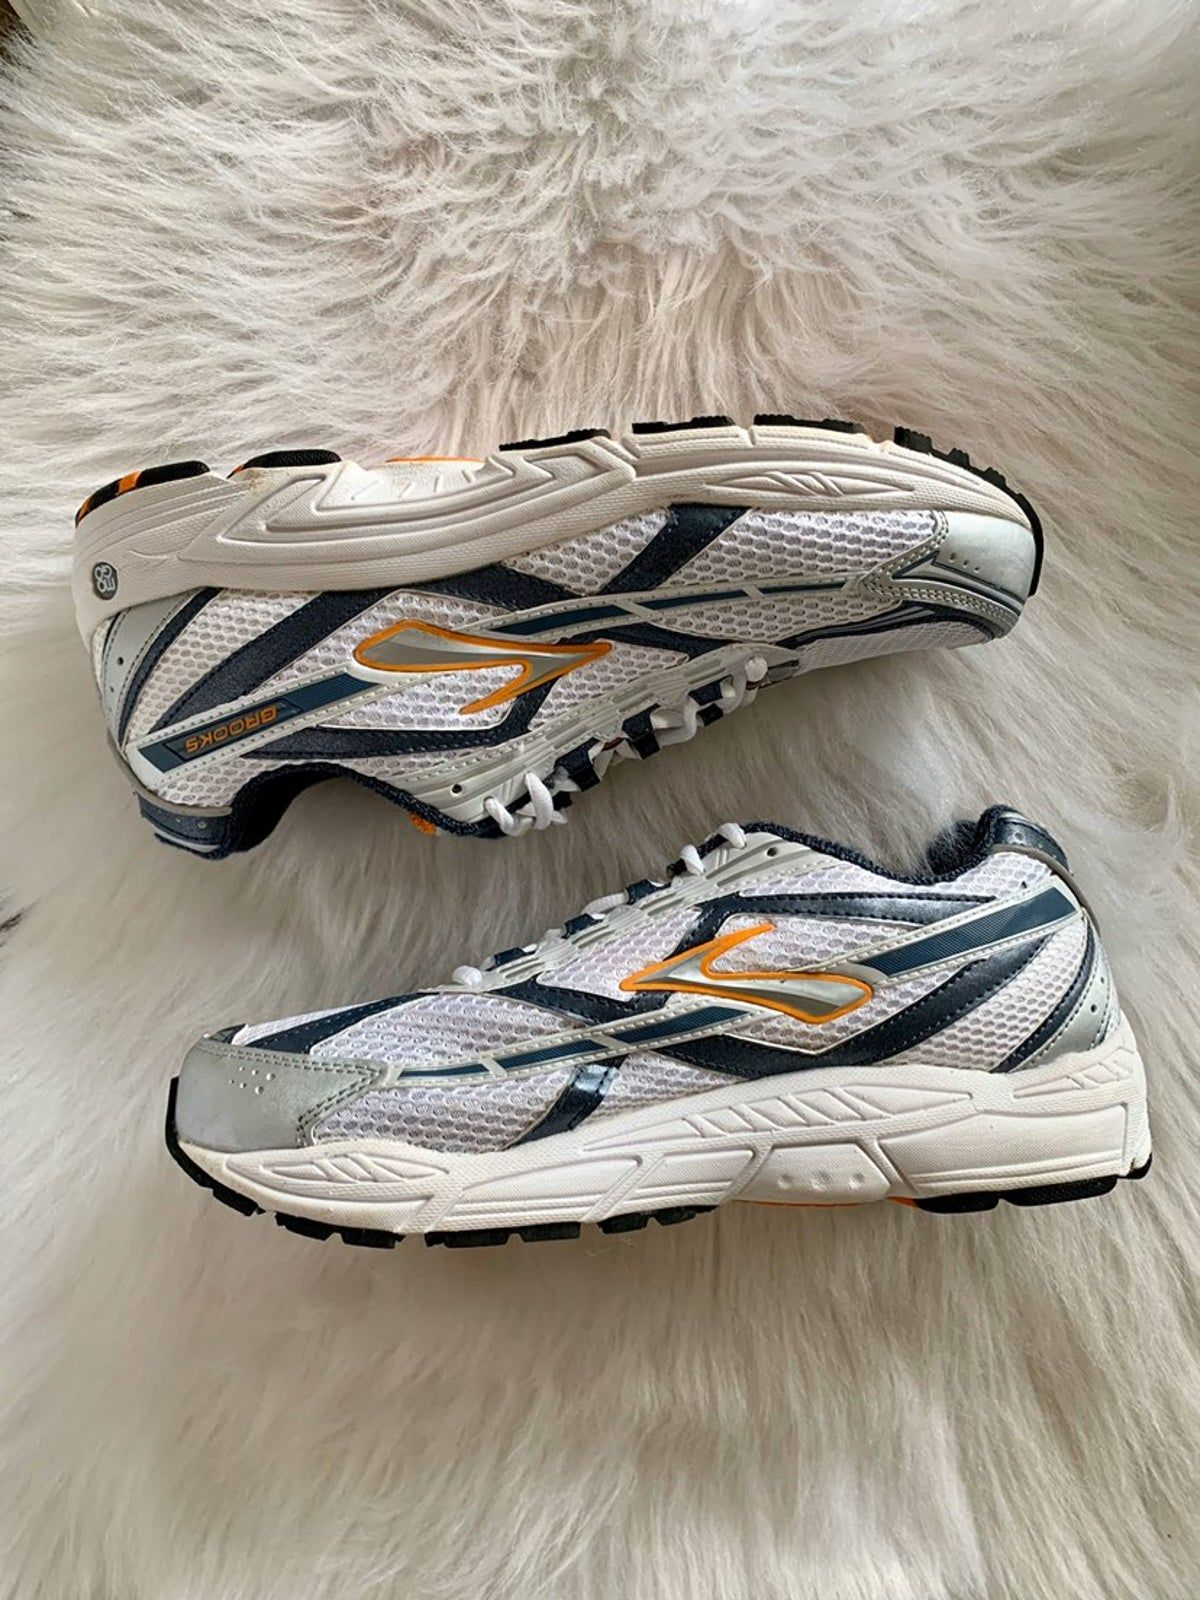 Brooks Dyad Running Shoes Size 9 in 2020 Shoes, Running